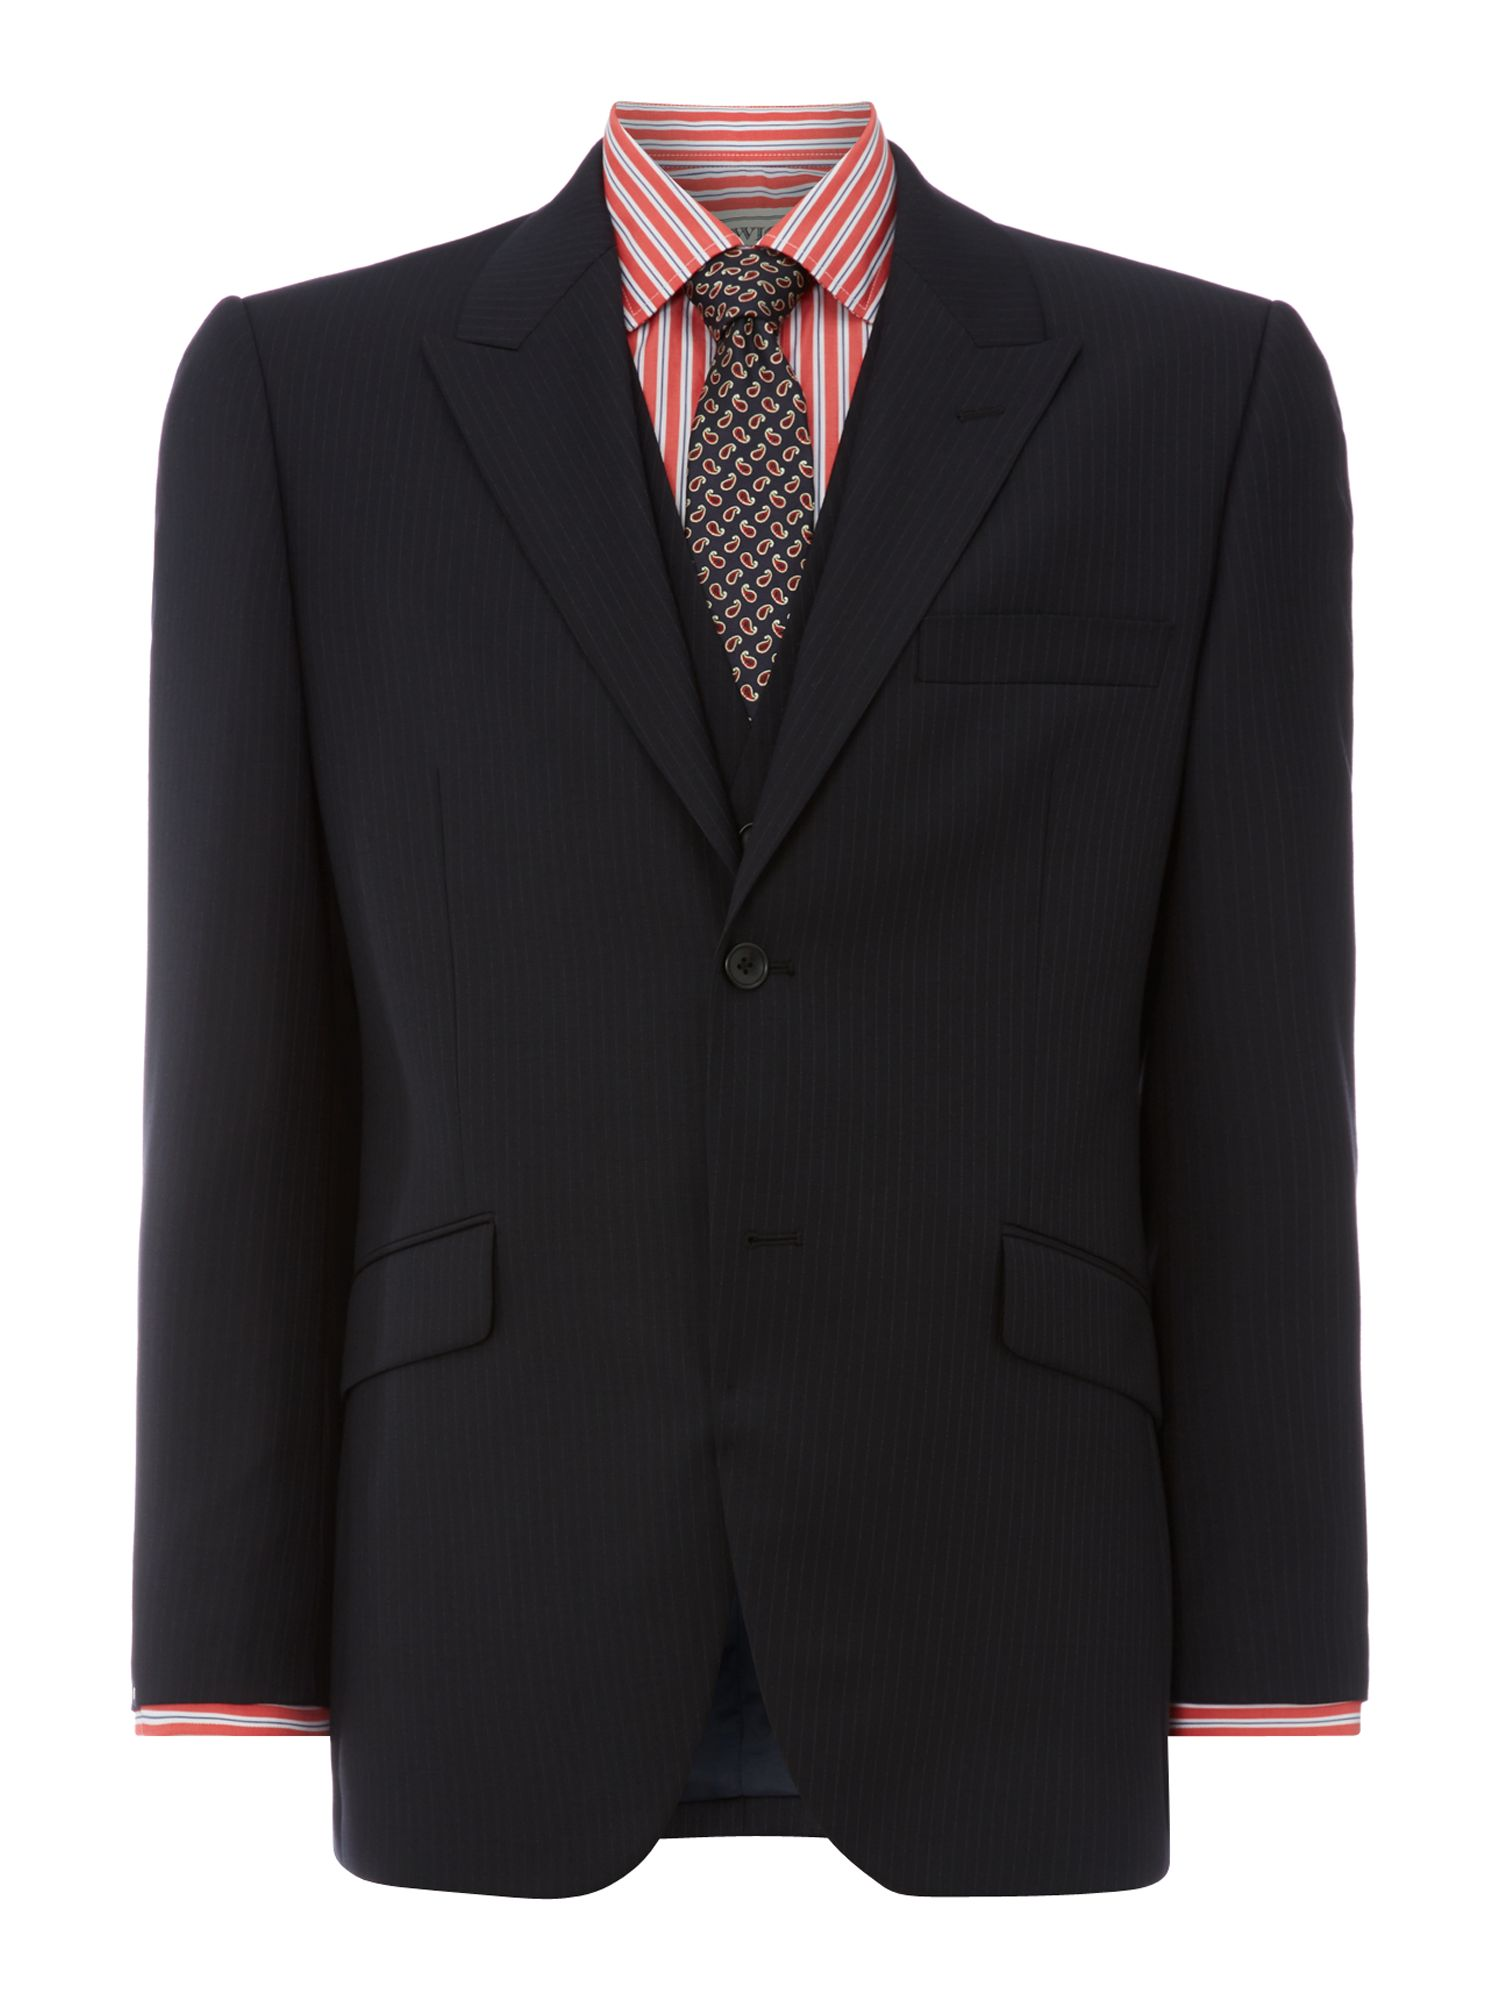 Prospect textured fine stripe suit